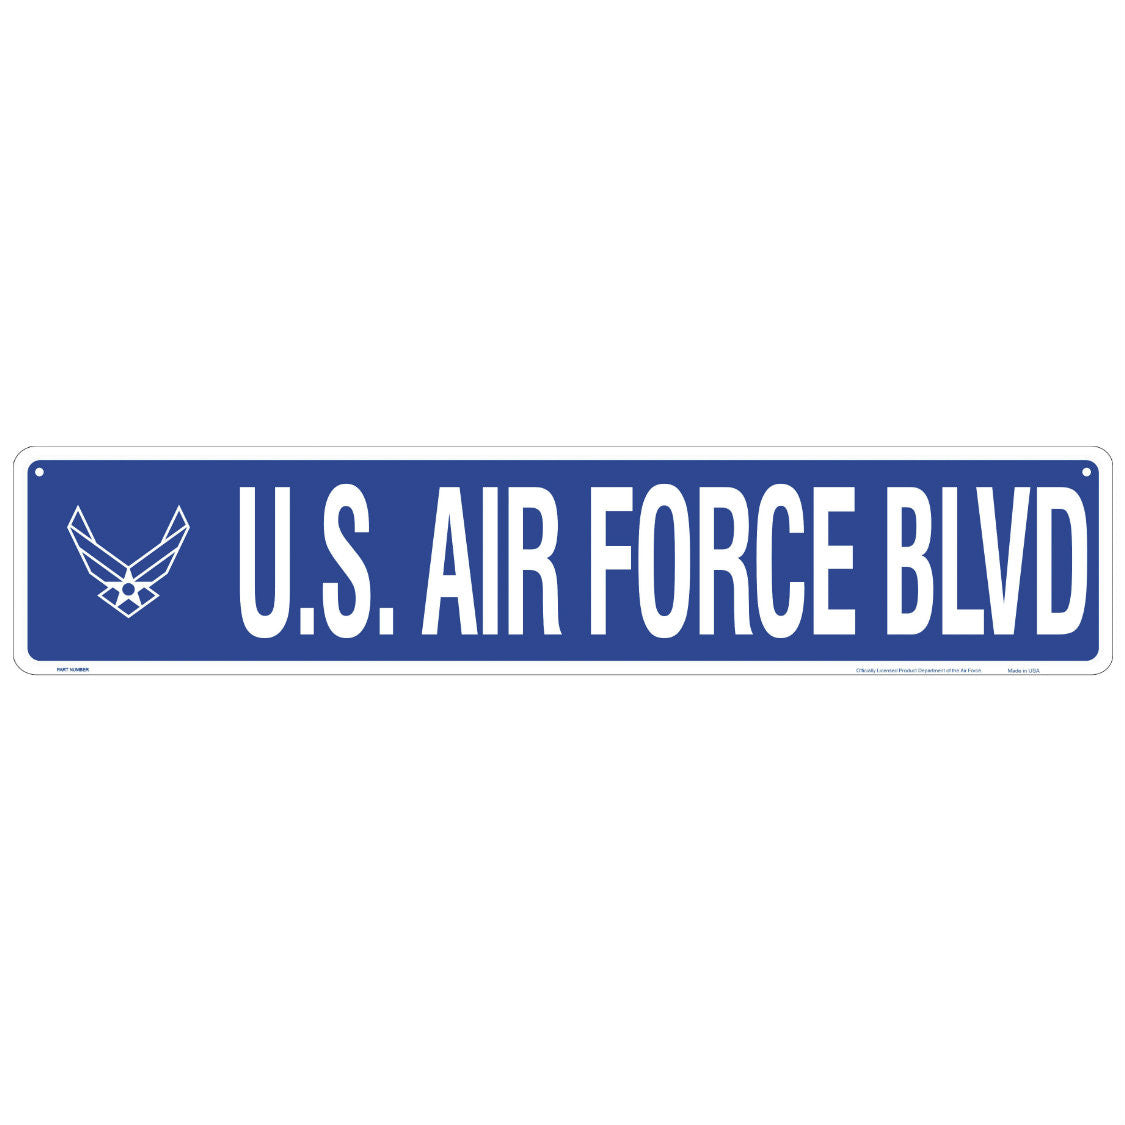 Air Force Blvd Metal Street Sign